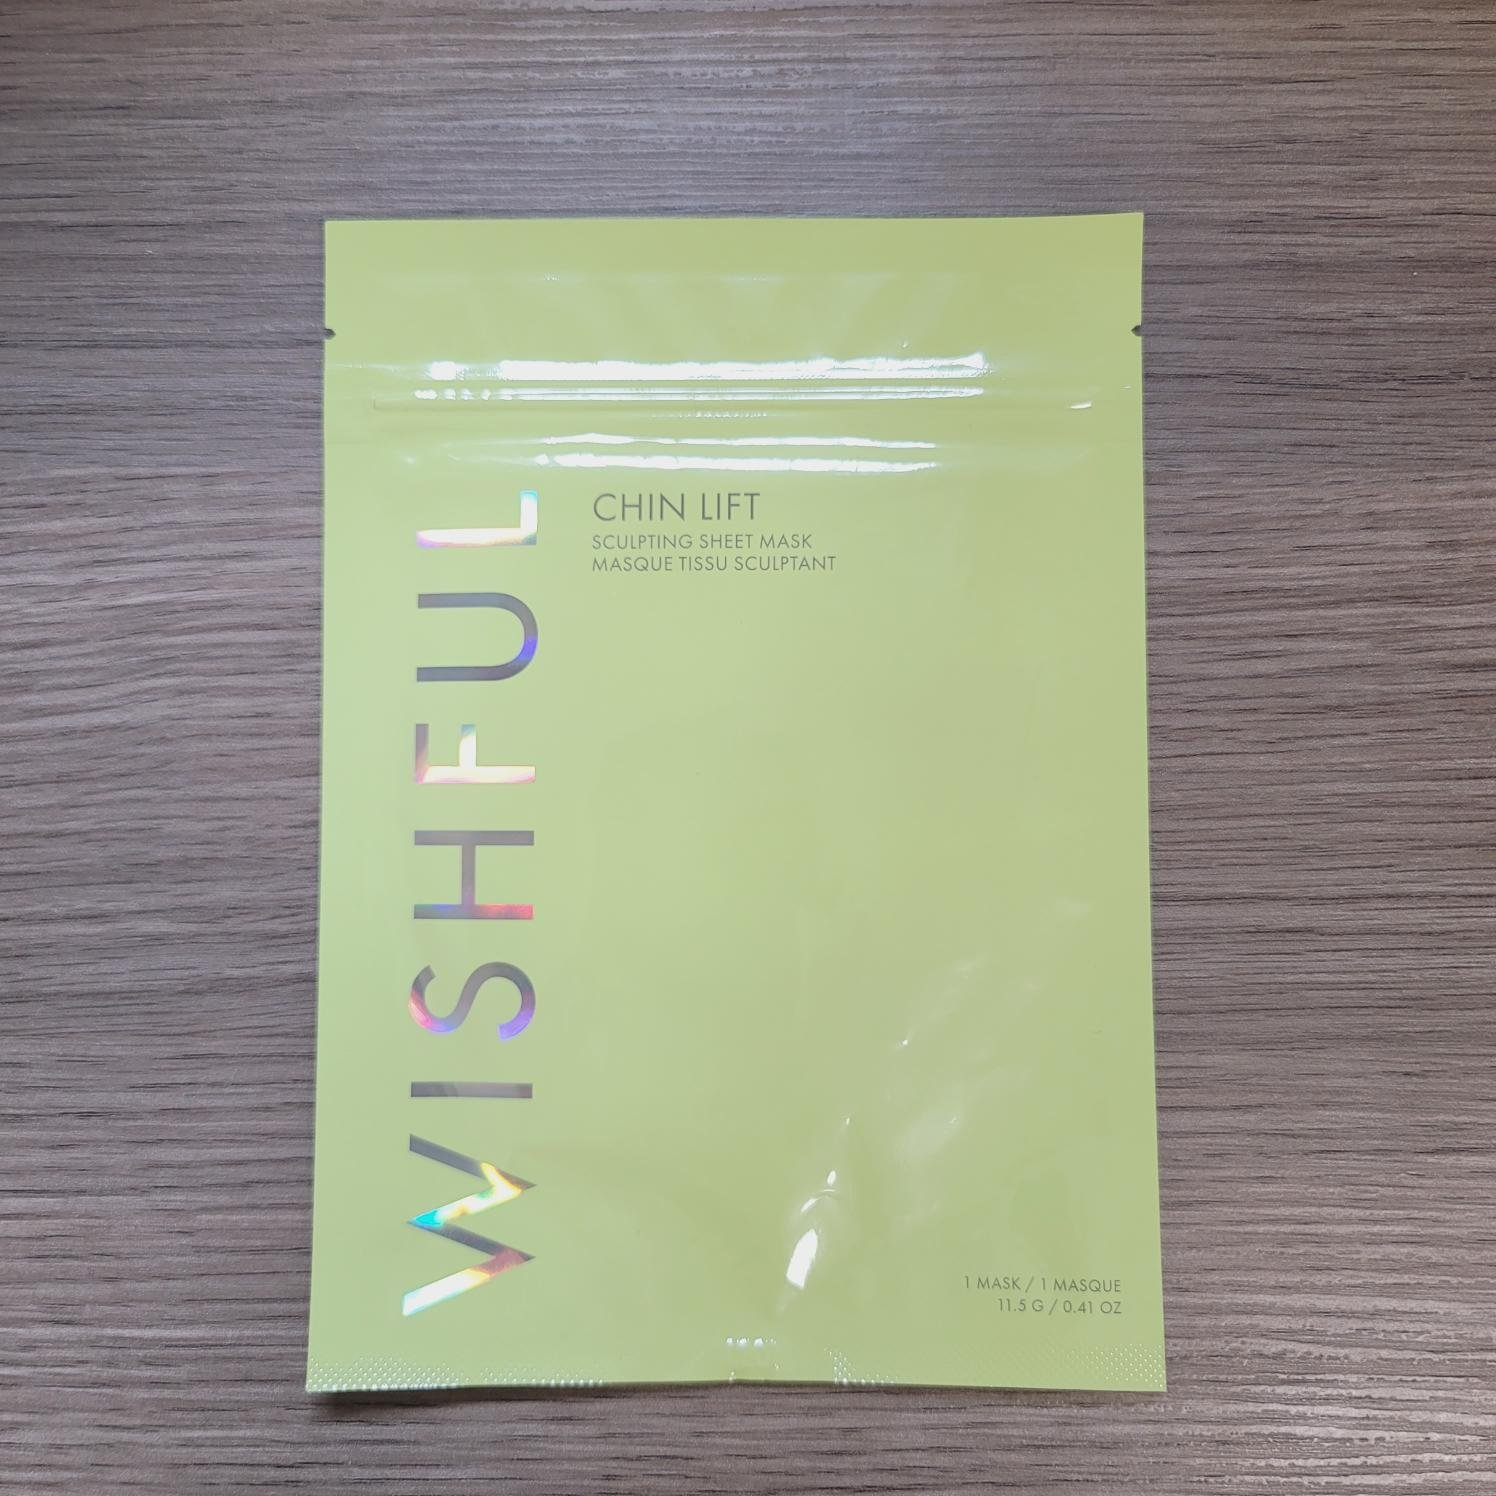 現貨🌸全新WISHFUL 提拉面膜  下巴提拉面膜 Chin Lift Sculpting Sheet Mask( 11.5g )